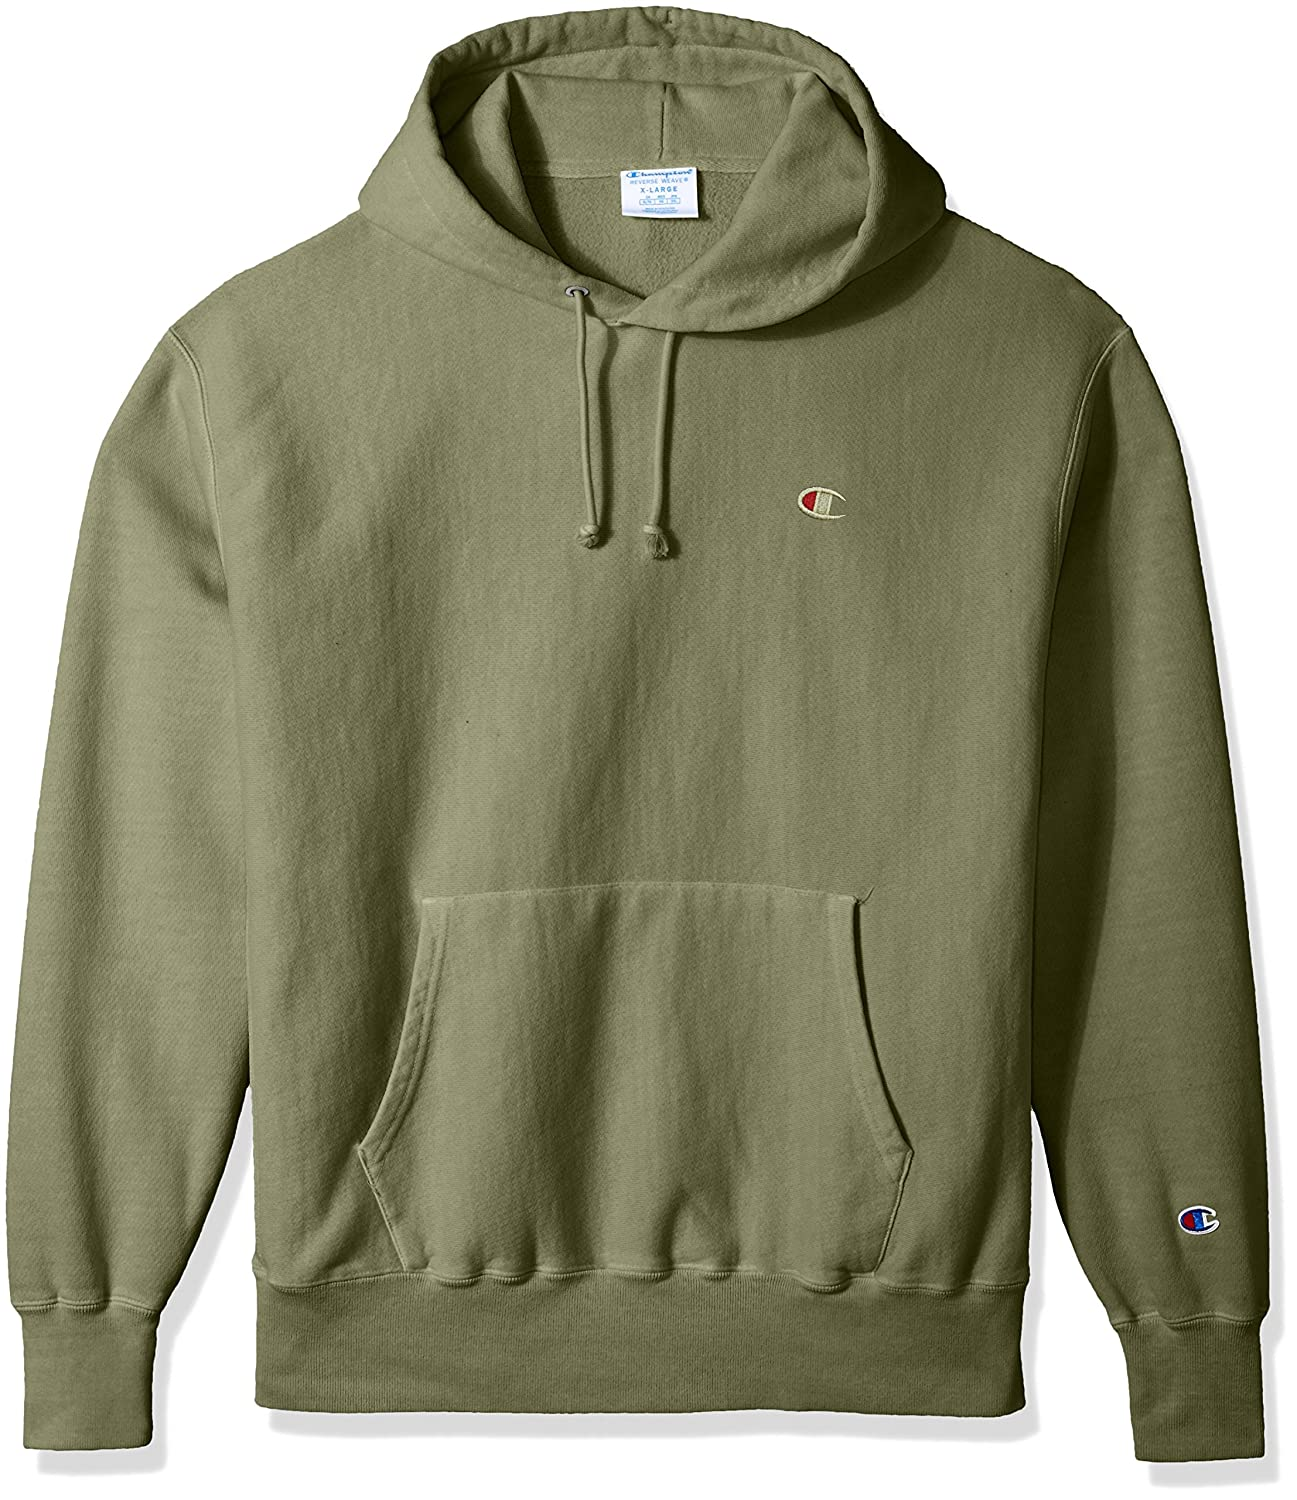 93ba0aab4e Amazon.com  Champion LIFE Men s Reverse Weave Pullover Hoodie  Clothing